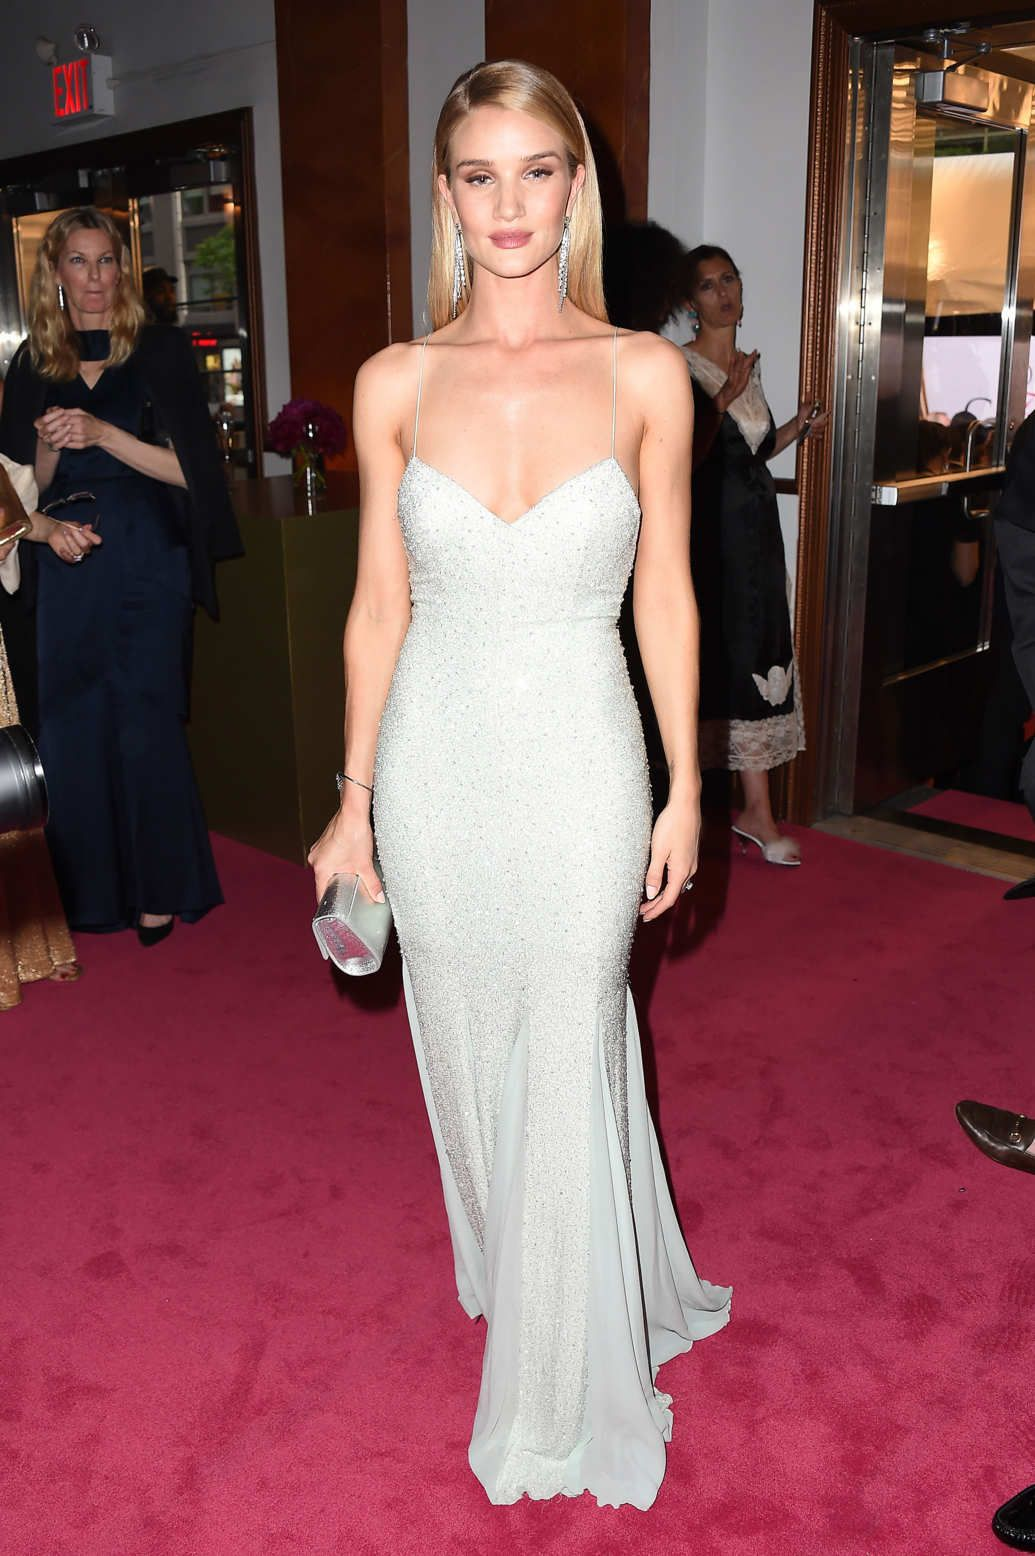 Rosie Huntington-Whiteley in Michael Kors at the CFDA Awards